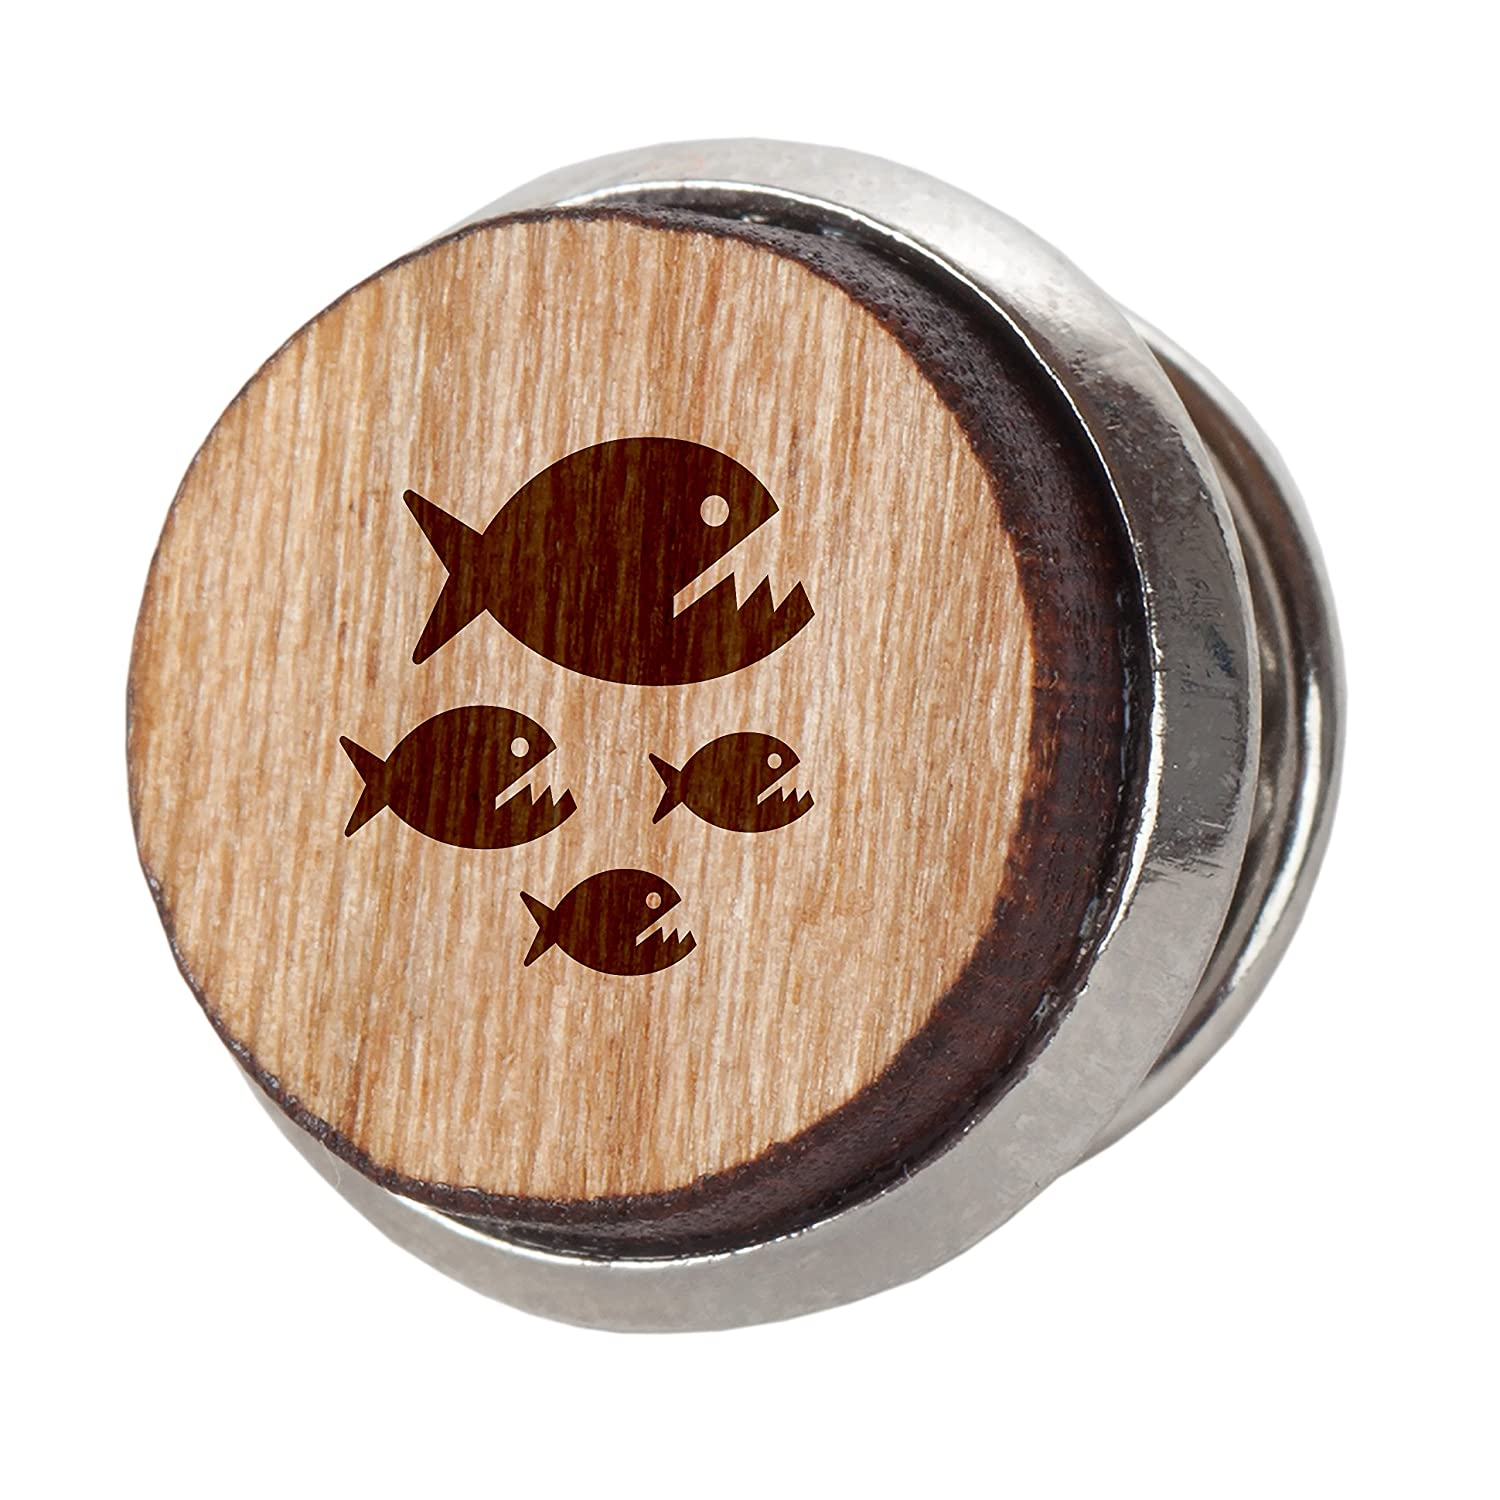 Engraved Tie Tack Gift 12Mm Simple Tie Clip with Laser Engraved Design Piranha Stylish Cherry Wood Tie Tack